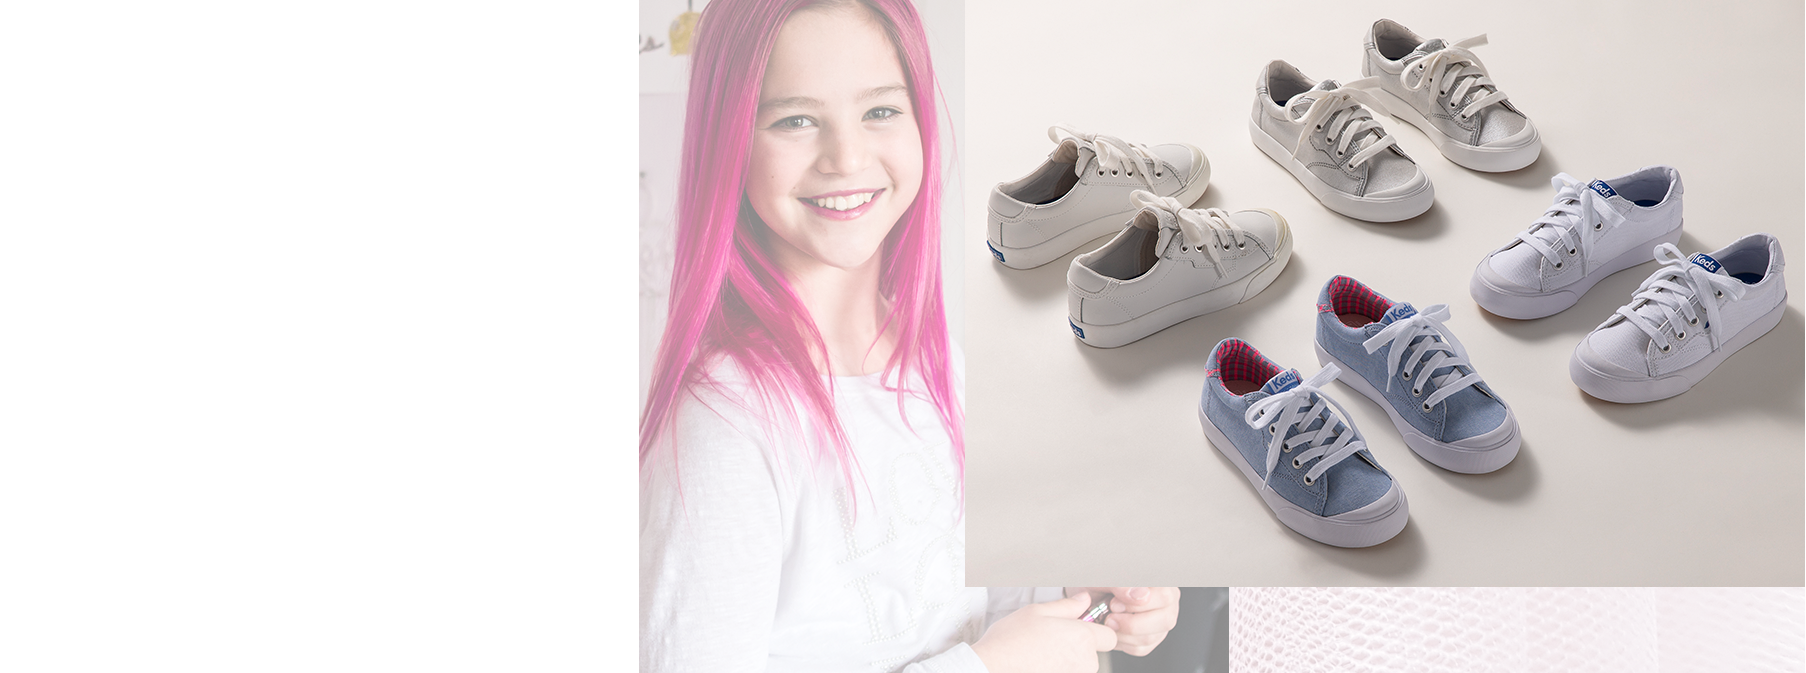 A girl smiling next to several varities of Keds shoes..